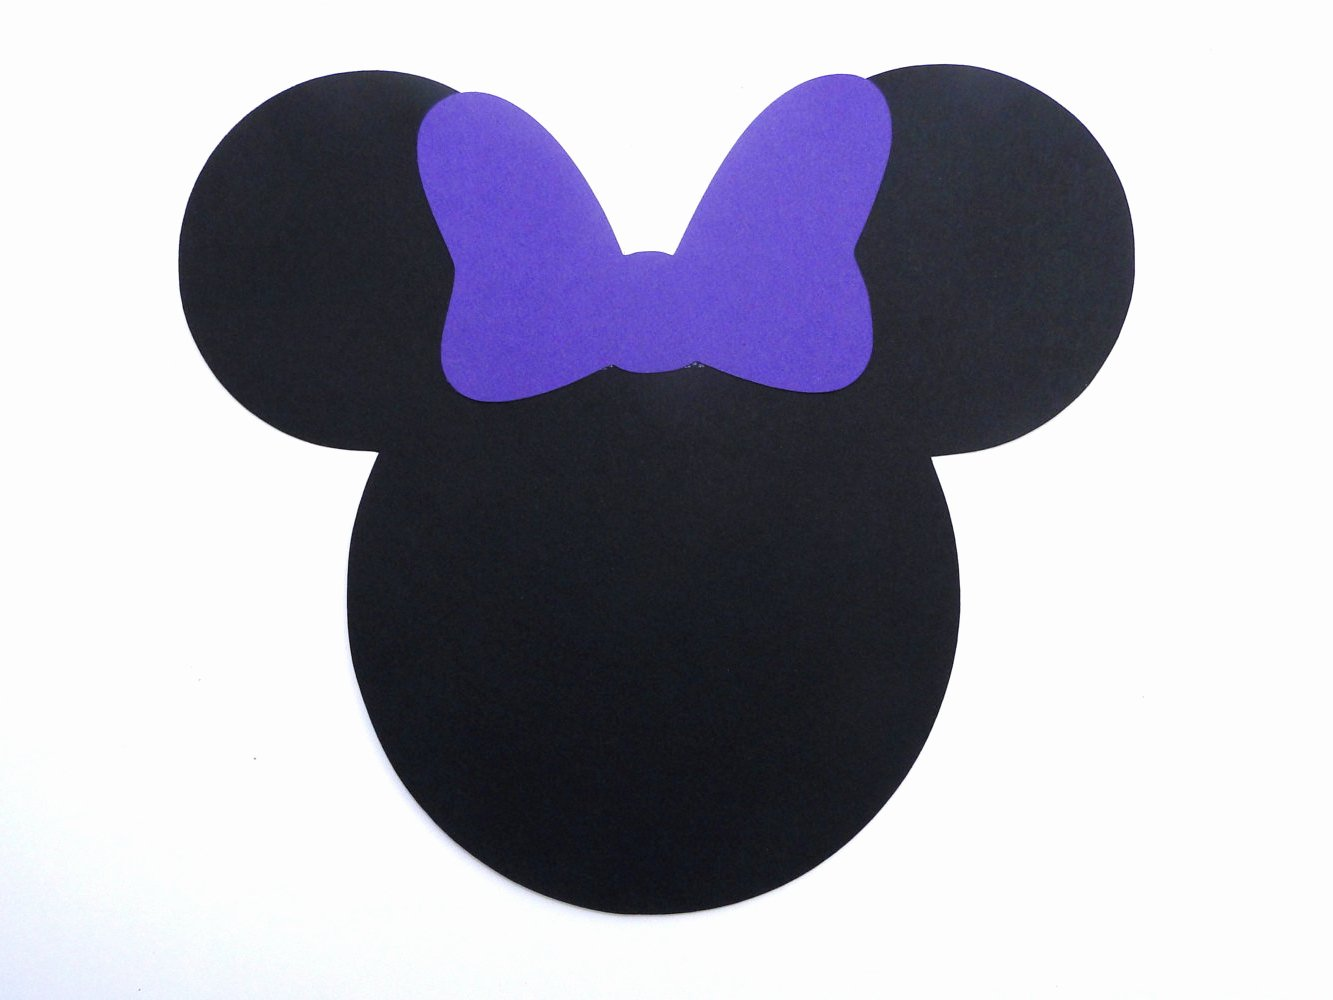 Mickey Mouse Cut Out Ears Unique Minnie Mouse Head with Bow Die Cut Any Color Bow and Ears